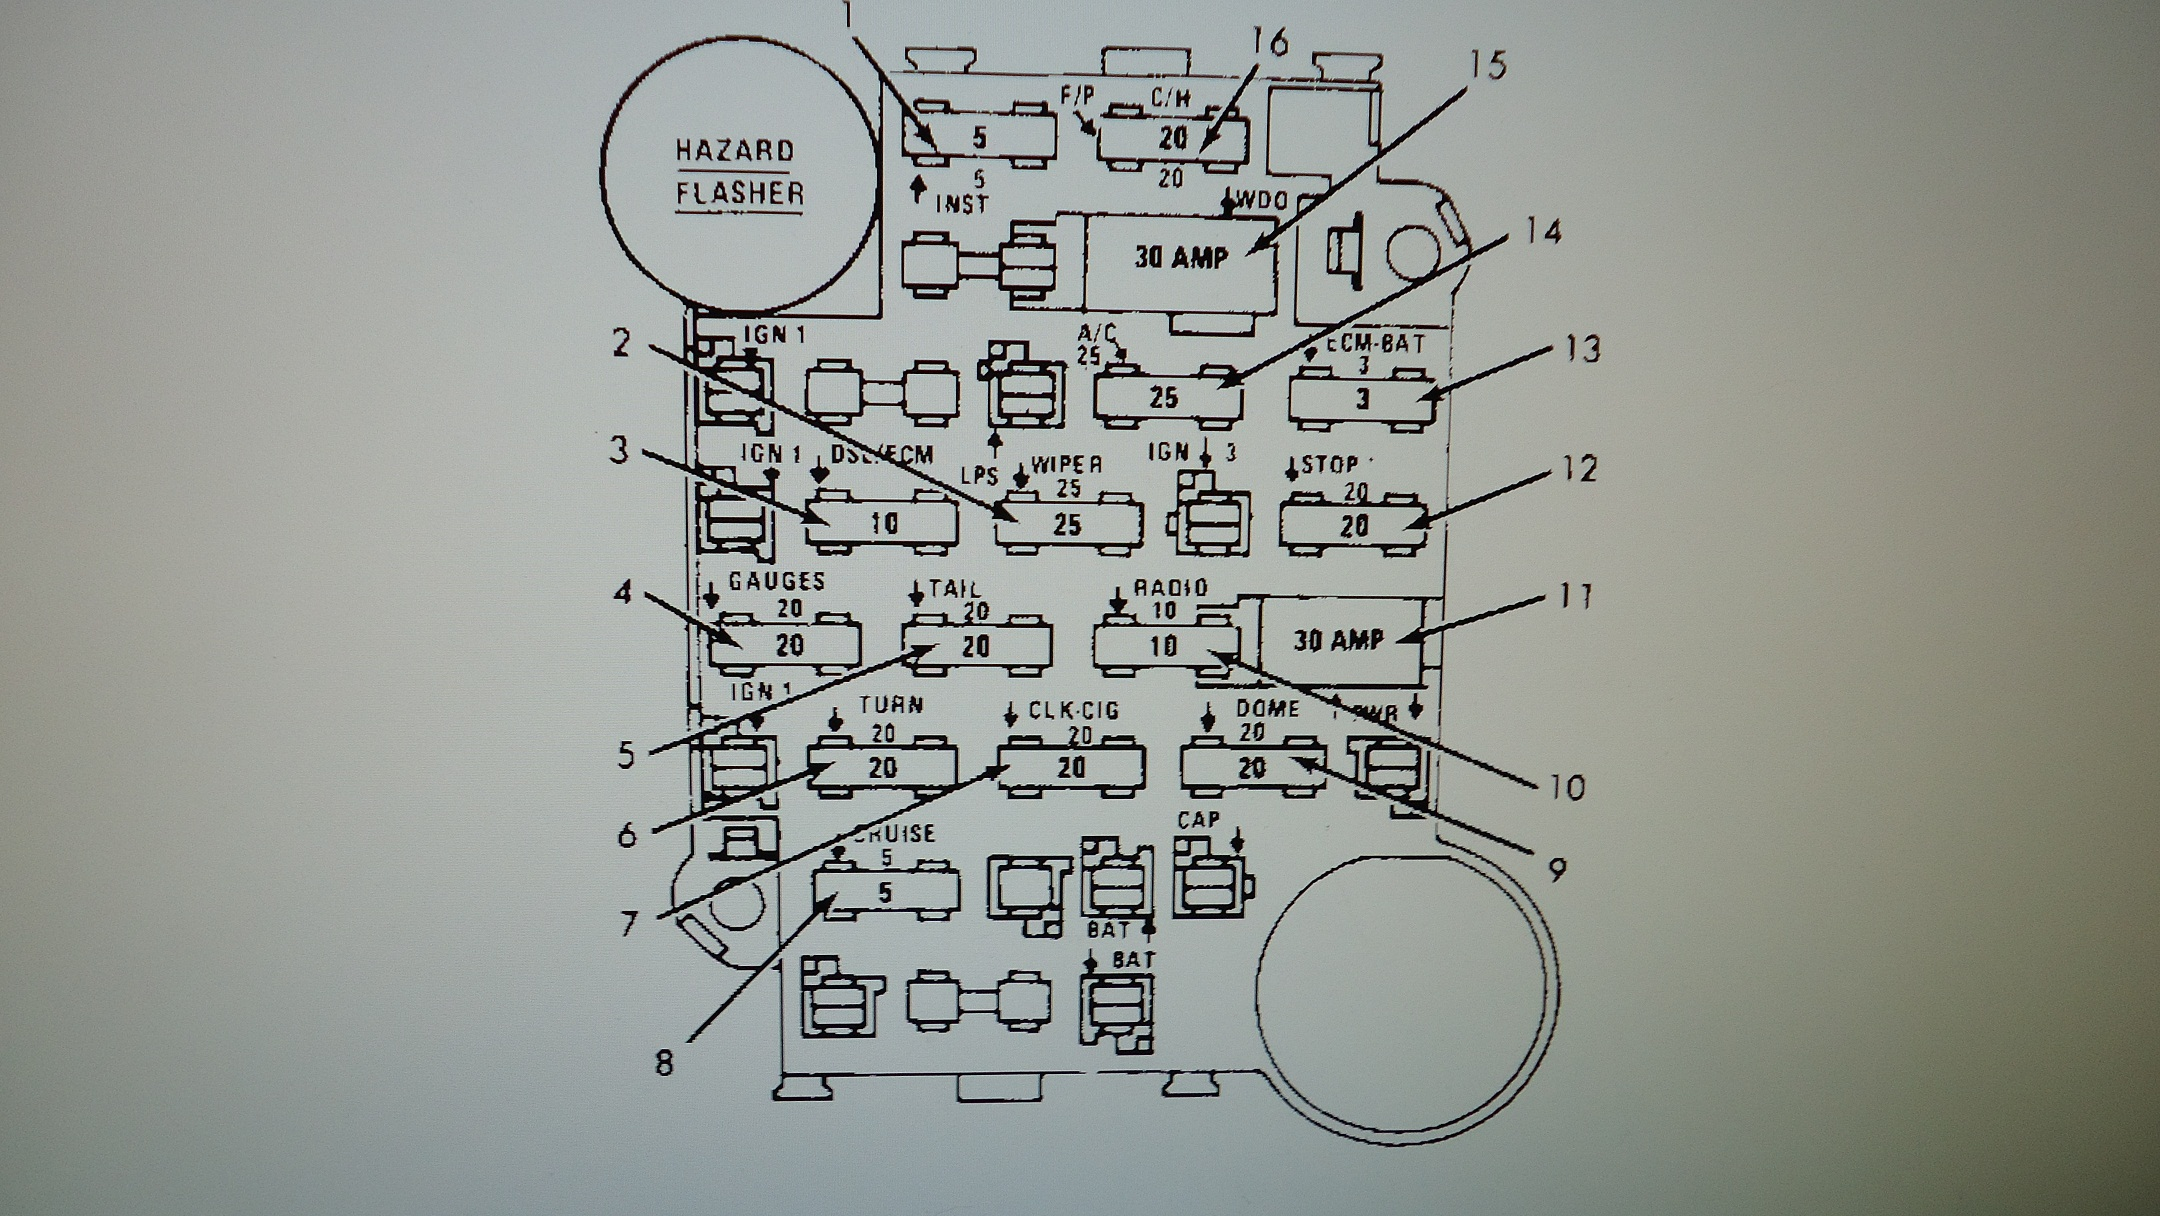 Air Conditioning Wiring Diagrams On Wiring Diagram Radio 92 Cadillac